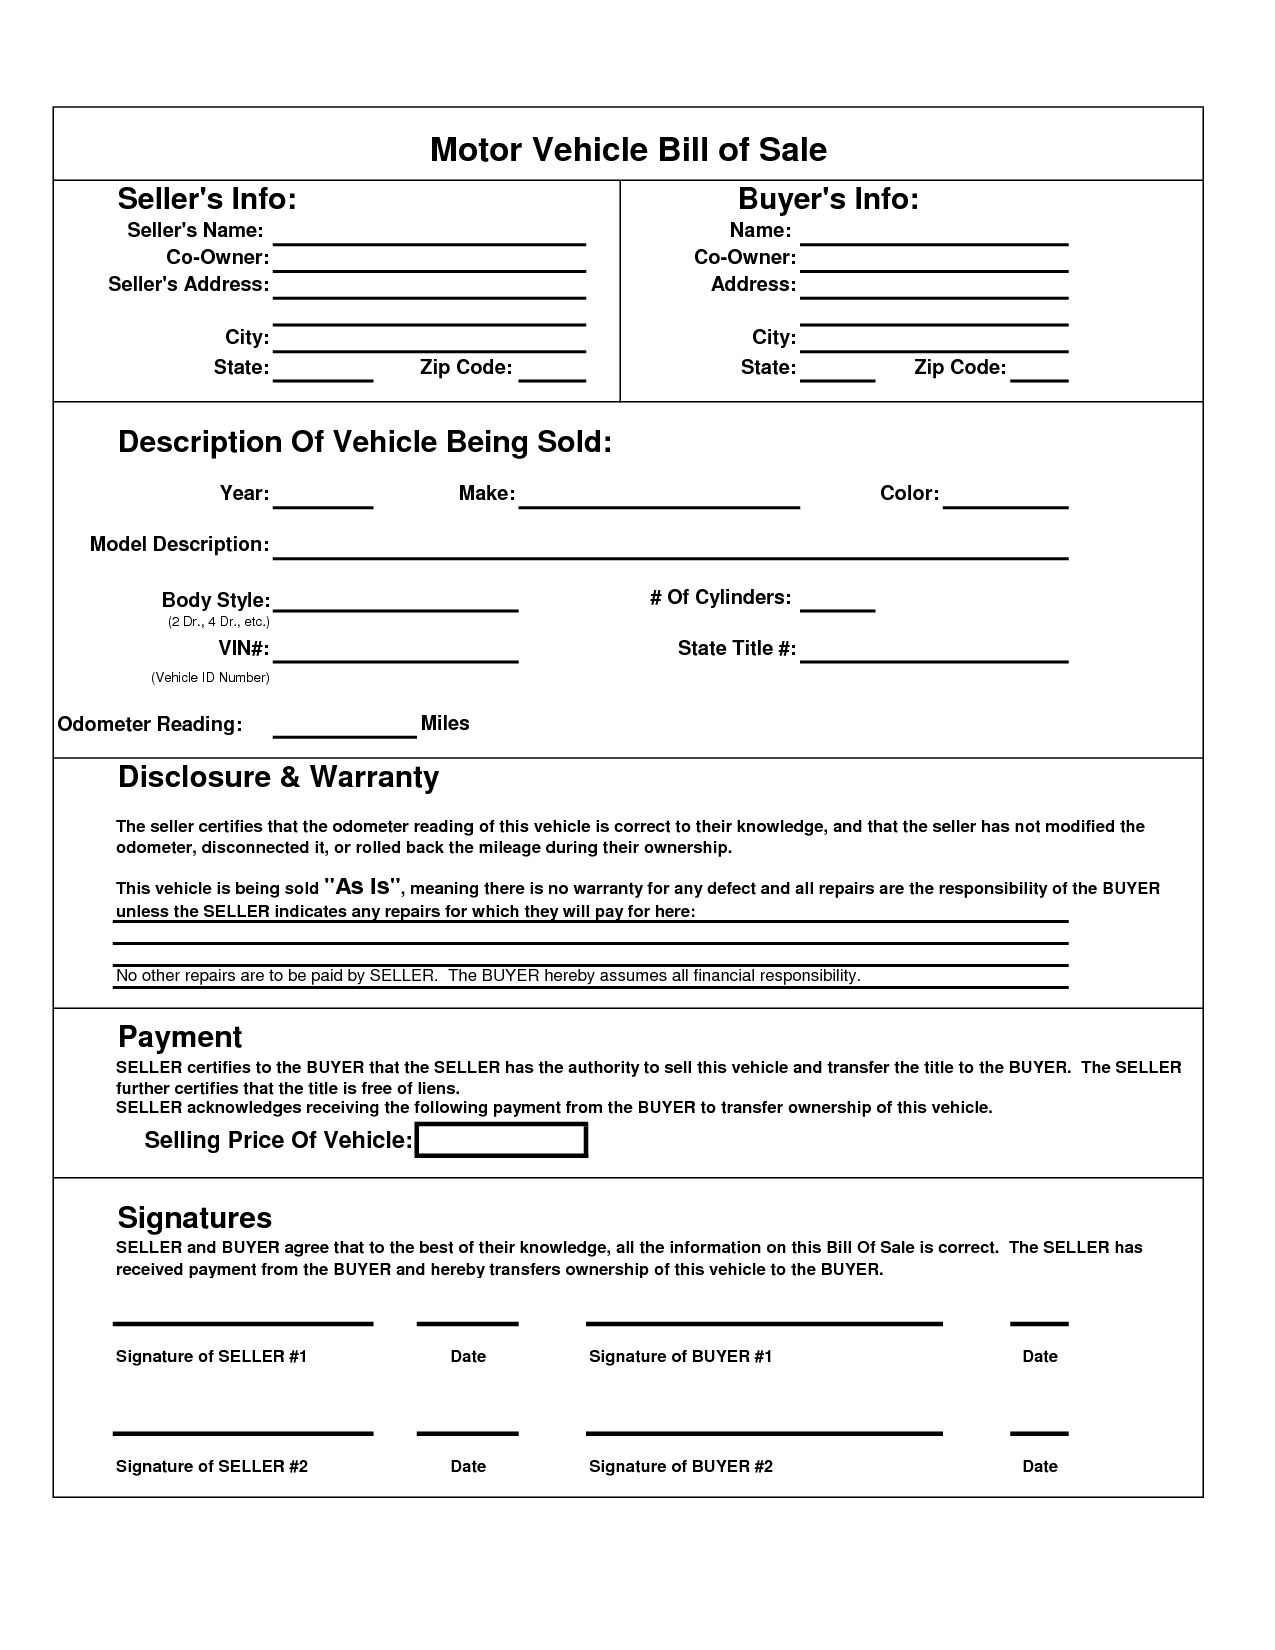 Texas Motor Vehicle Bill Sale Form | Books Worth Reading - Free Printable Bill Of Sale For Car